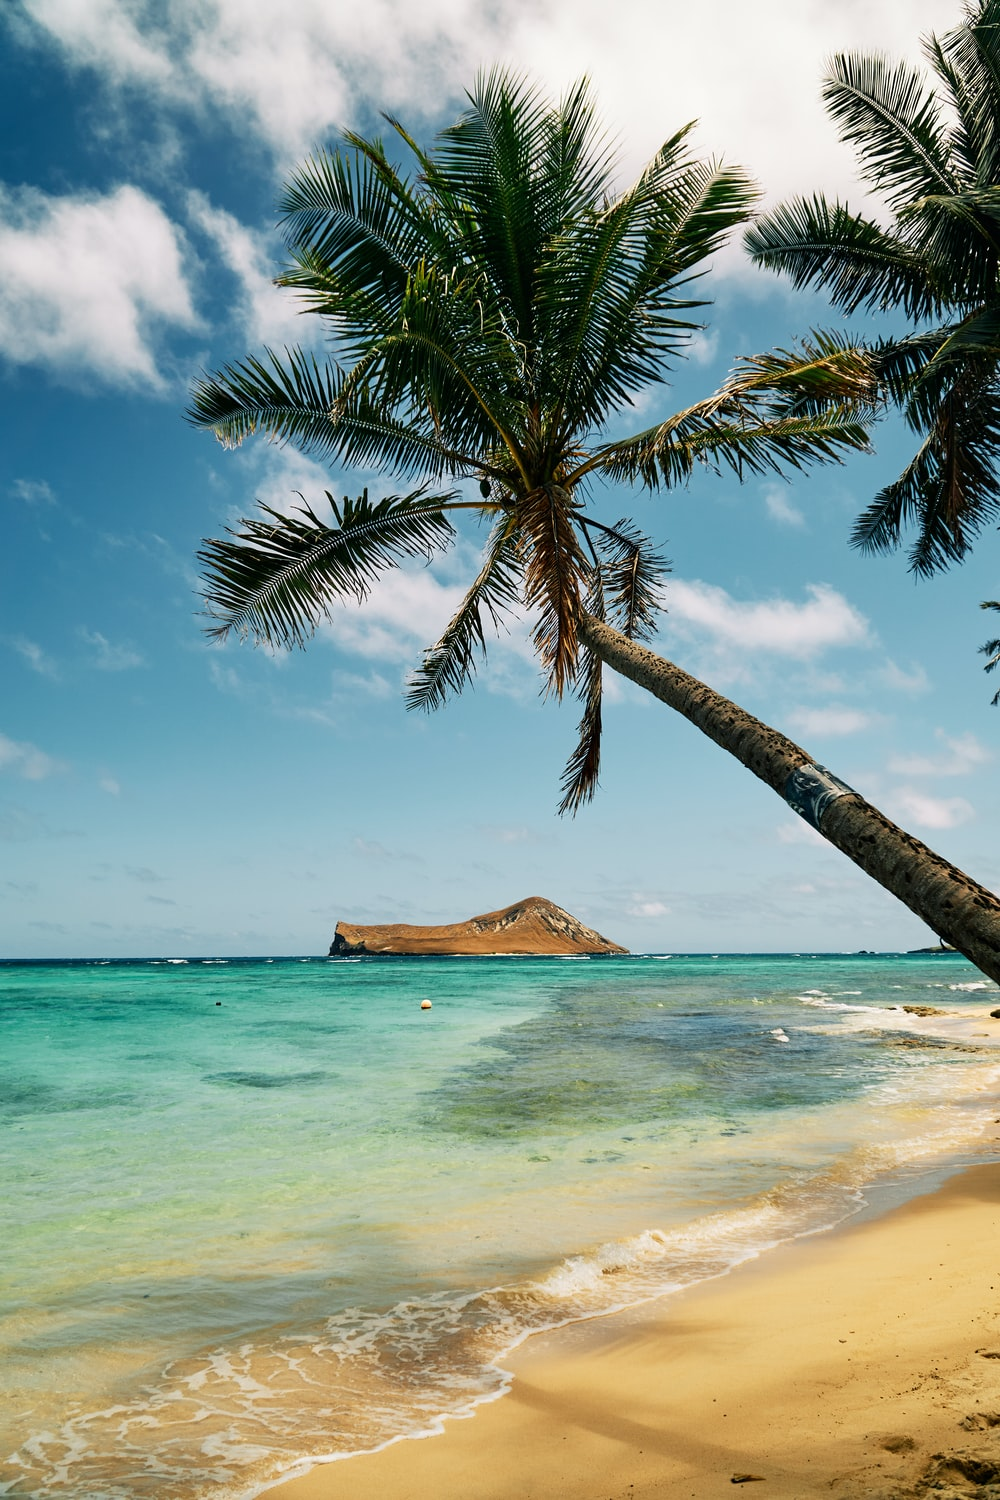 Hawaii iPhone Wallpaper – How to Download Images For Your iPhone